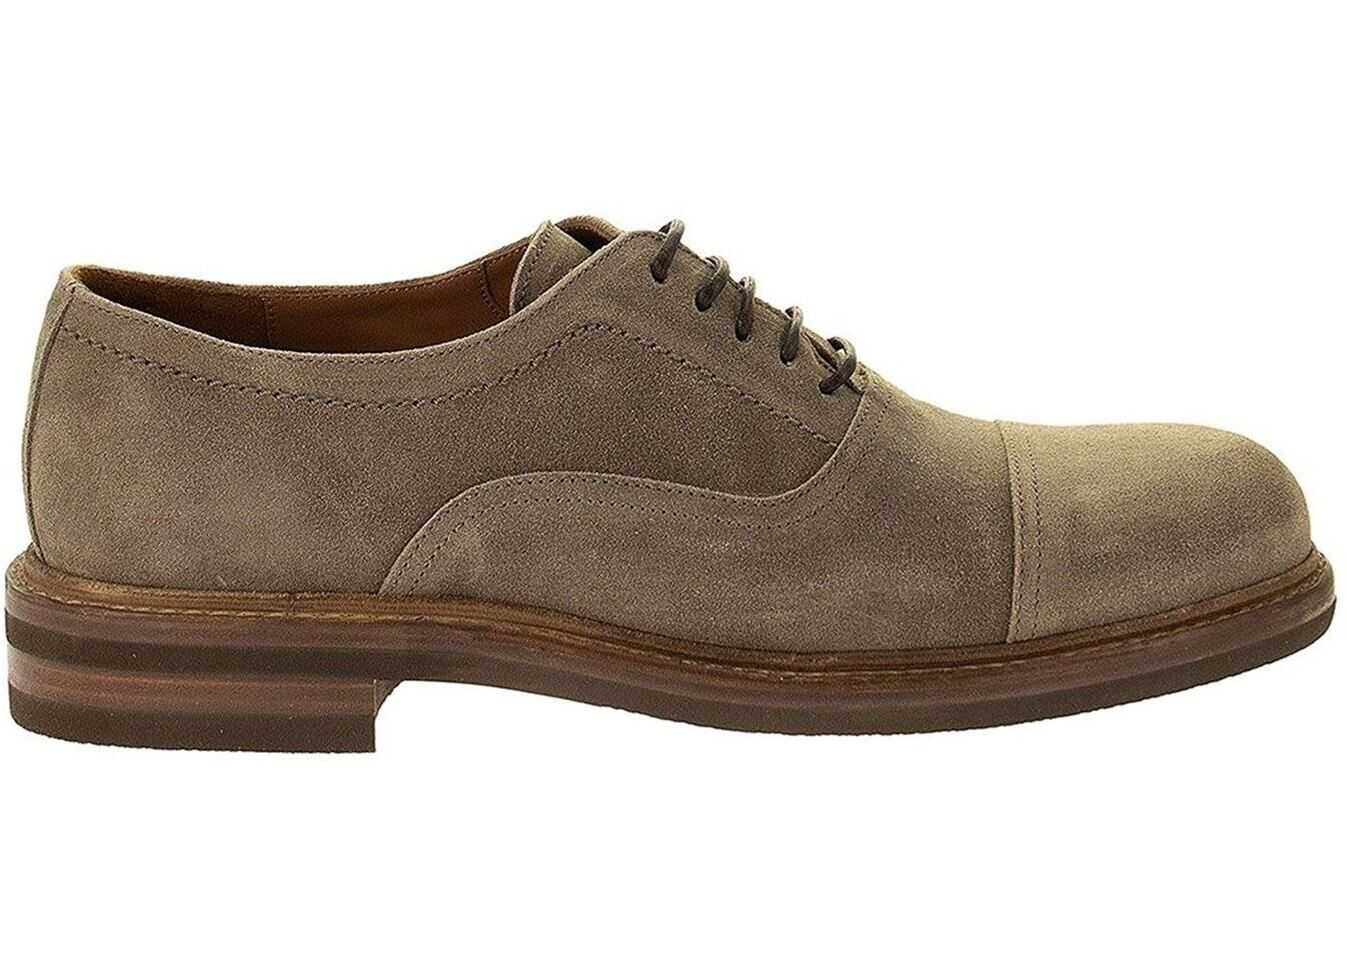 Brunello Cucinelli Suede Oxford Shoes In Grey MZUPLHX862C8080 Grey imagine b-mall.ro